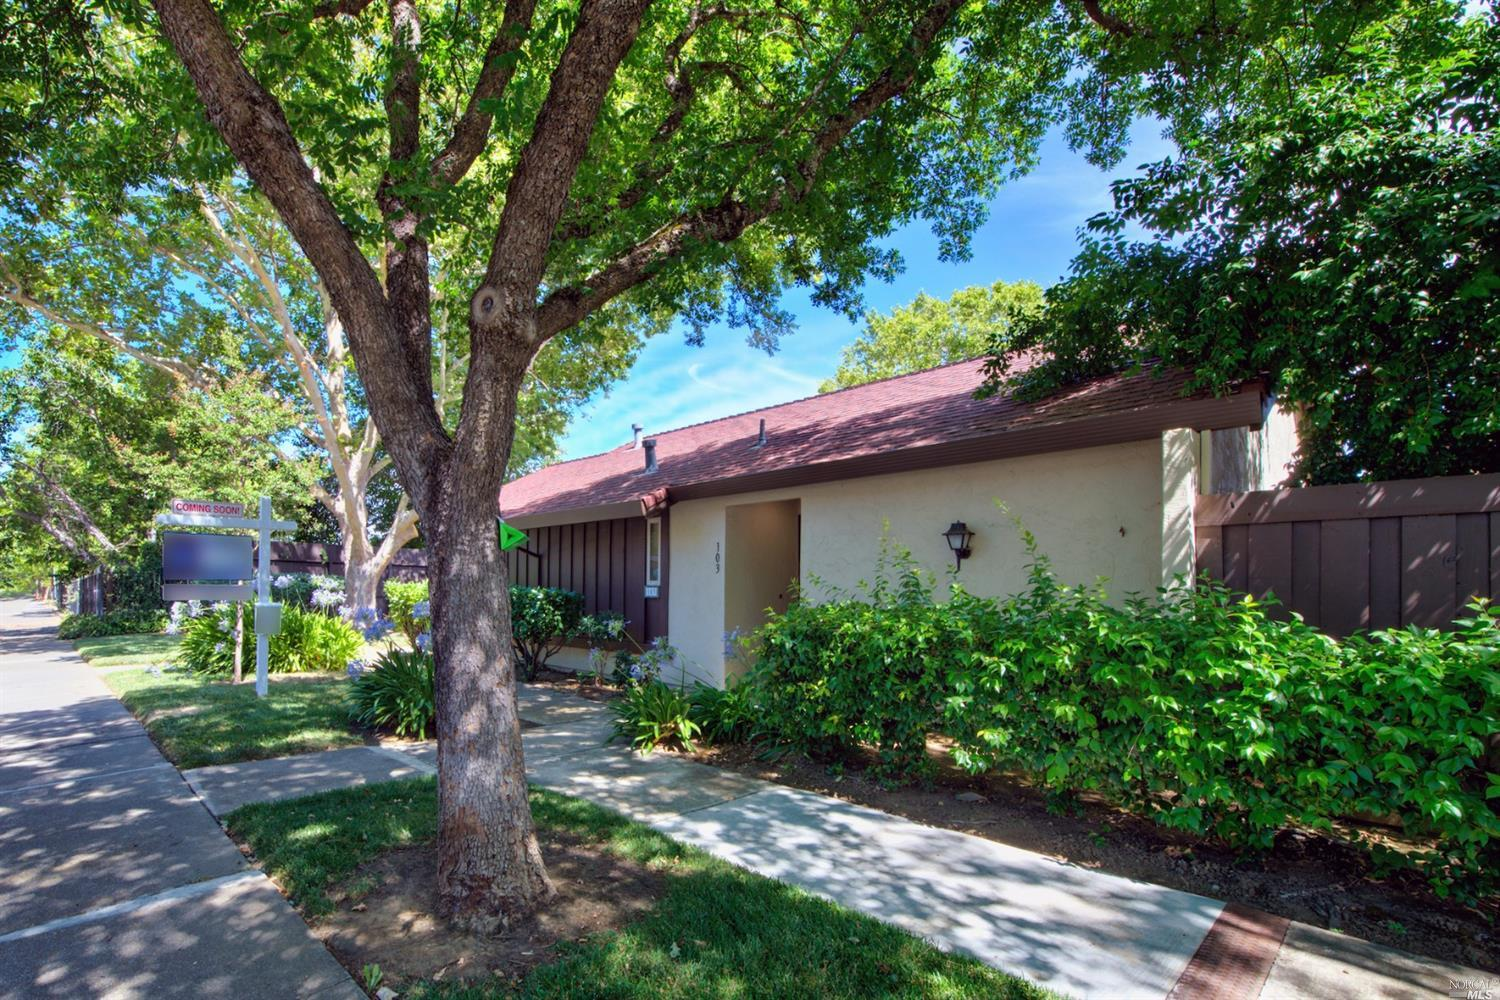 Updated single-level Vacaville condo with a 2-car garage located on the north side of Vacaville with close proximity to downtown and I-80. HOA includes a large community swimming pool, water, garbage, front landscaping, home exterior and roof. Interior has been beautifully updated with remodeled bathrooms, paint, carpet, laminate flooring, ceiling fans and recessed lighting. Kitchen offers granite countertops, stainless-steel appliances, updated cabinets and a dining area. Master has a sliding glass door to the private covered patio area, ideal for entertaining.